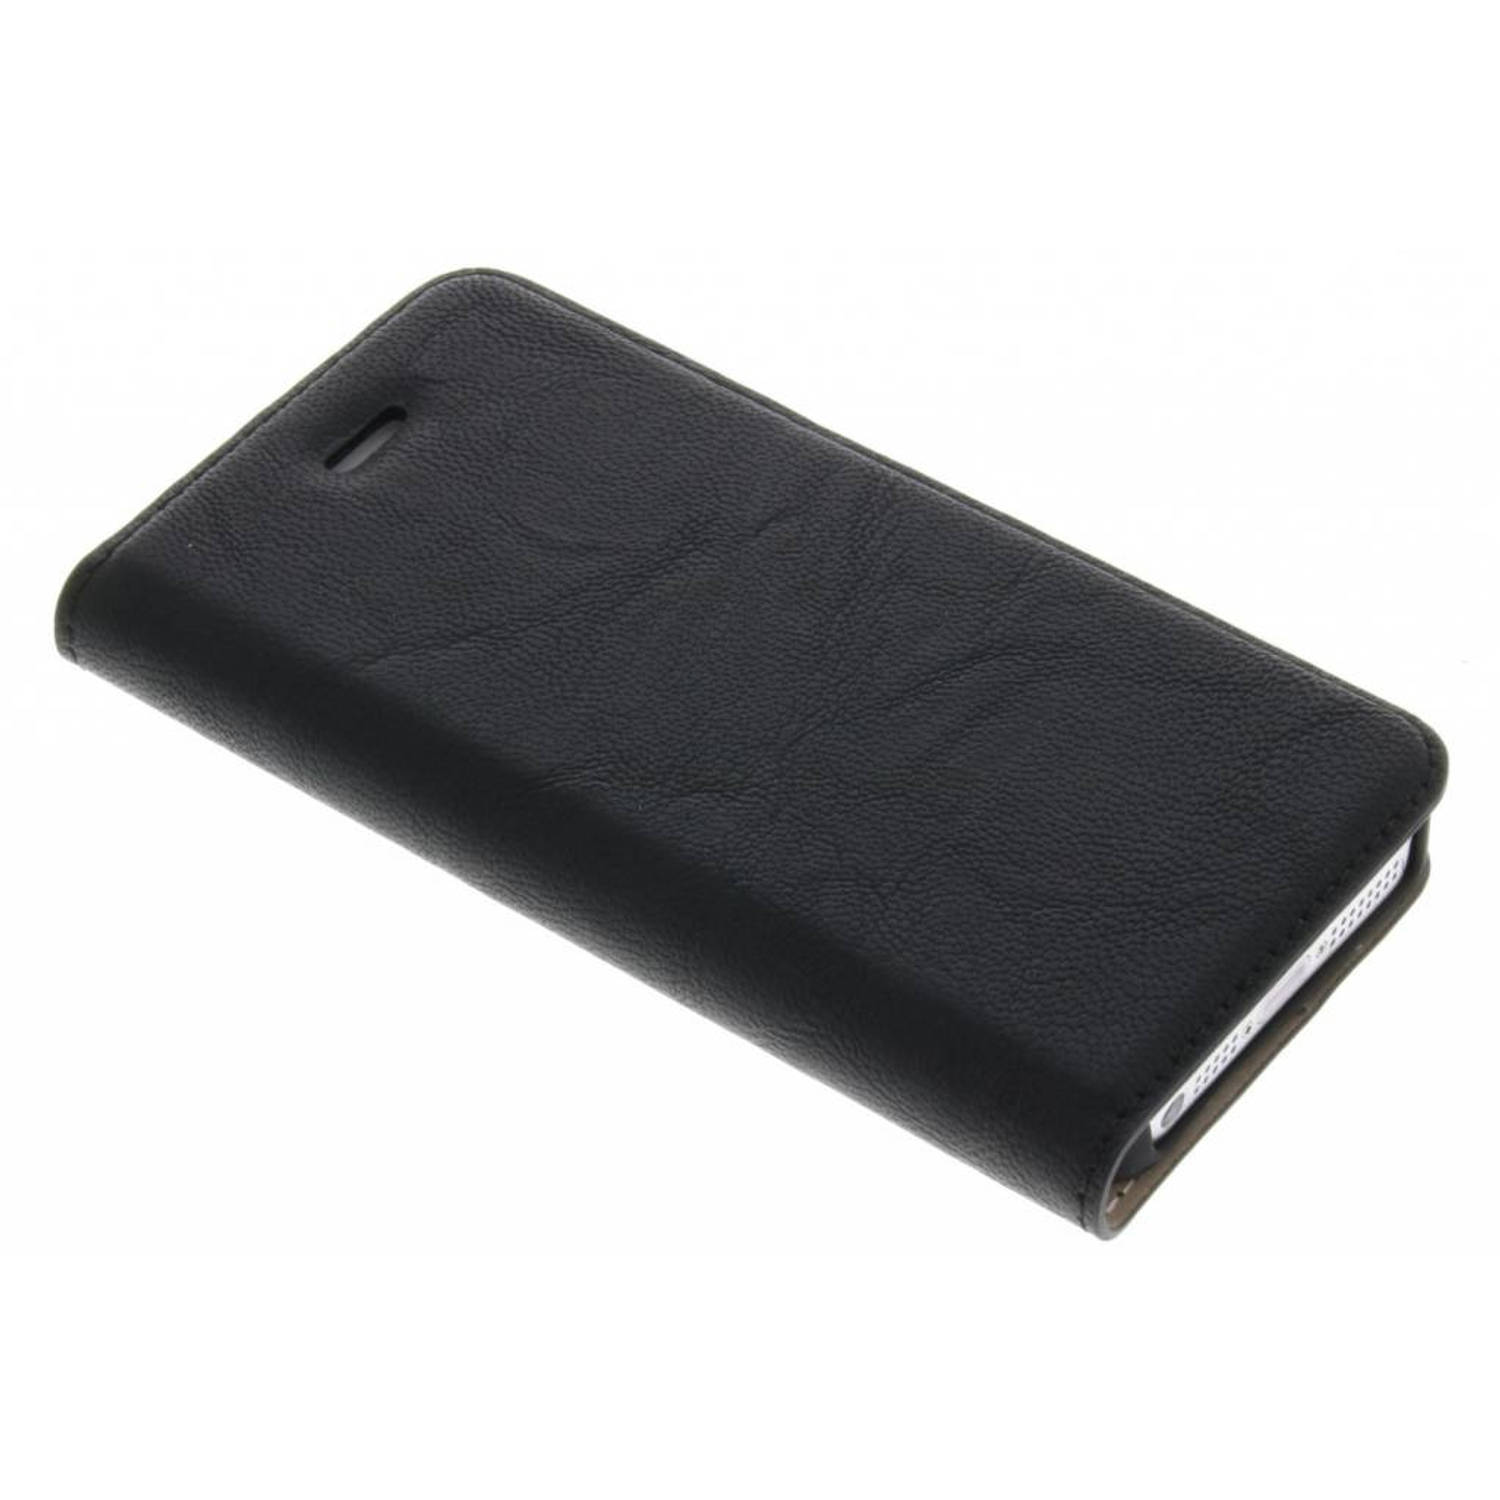 Guard Booklet Case voor de iPhone 5 / 5s / SE - Zwart